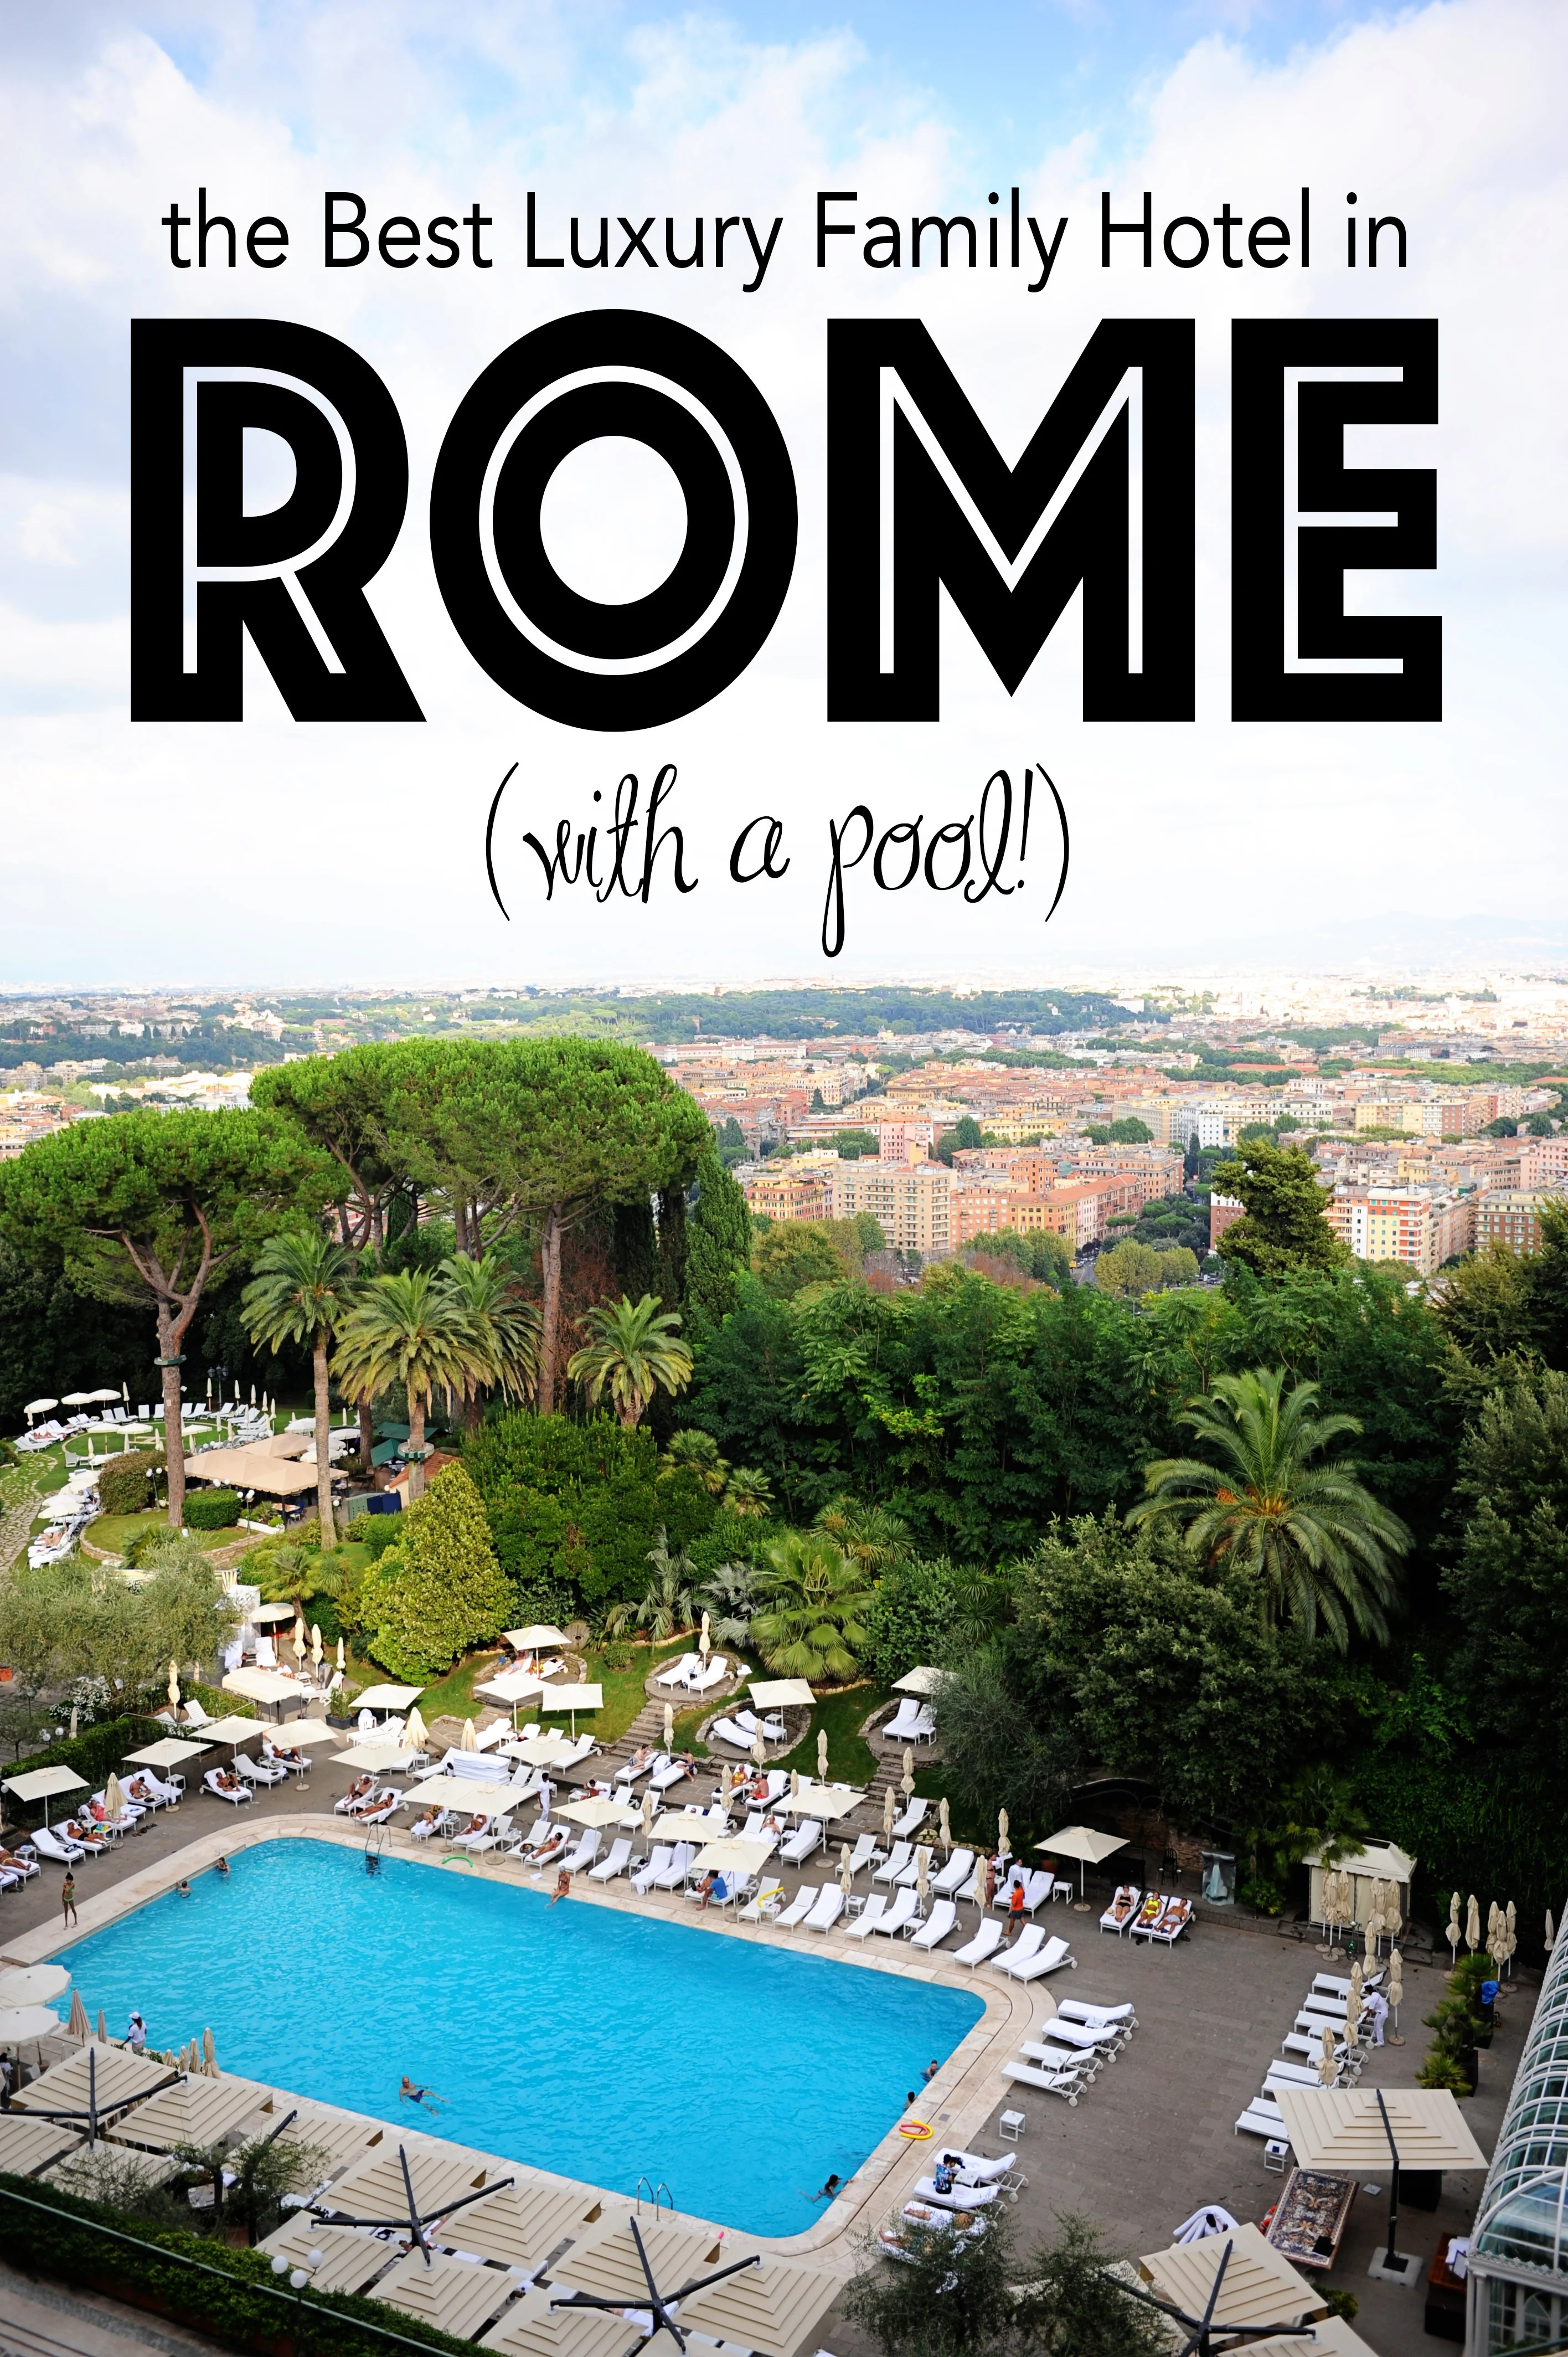 Family Hotels in Rome with Outdoor Pools : Rome Cavalieri Hotel